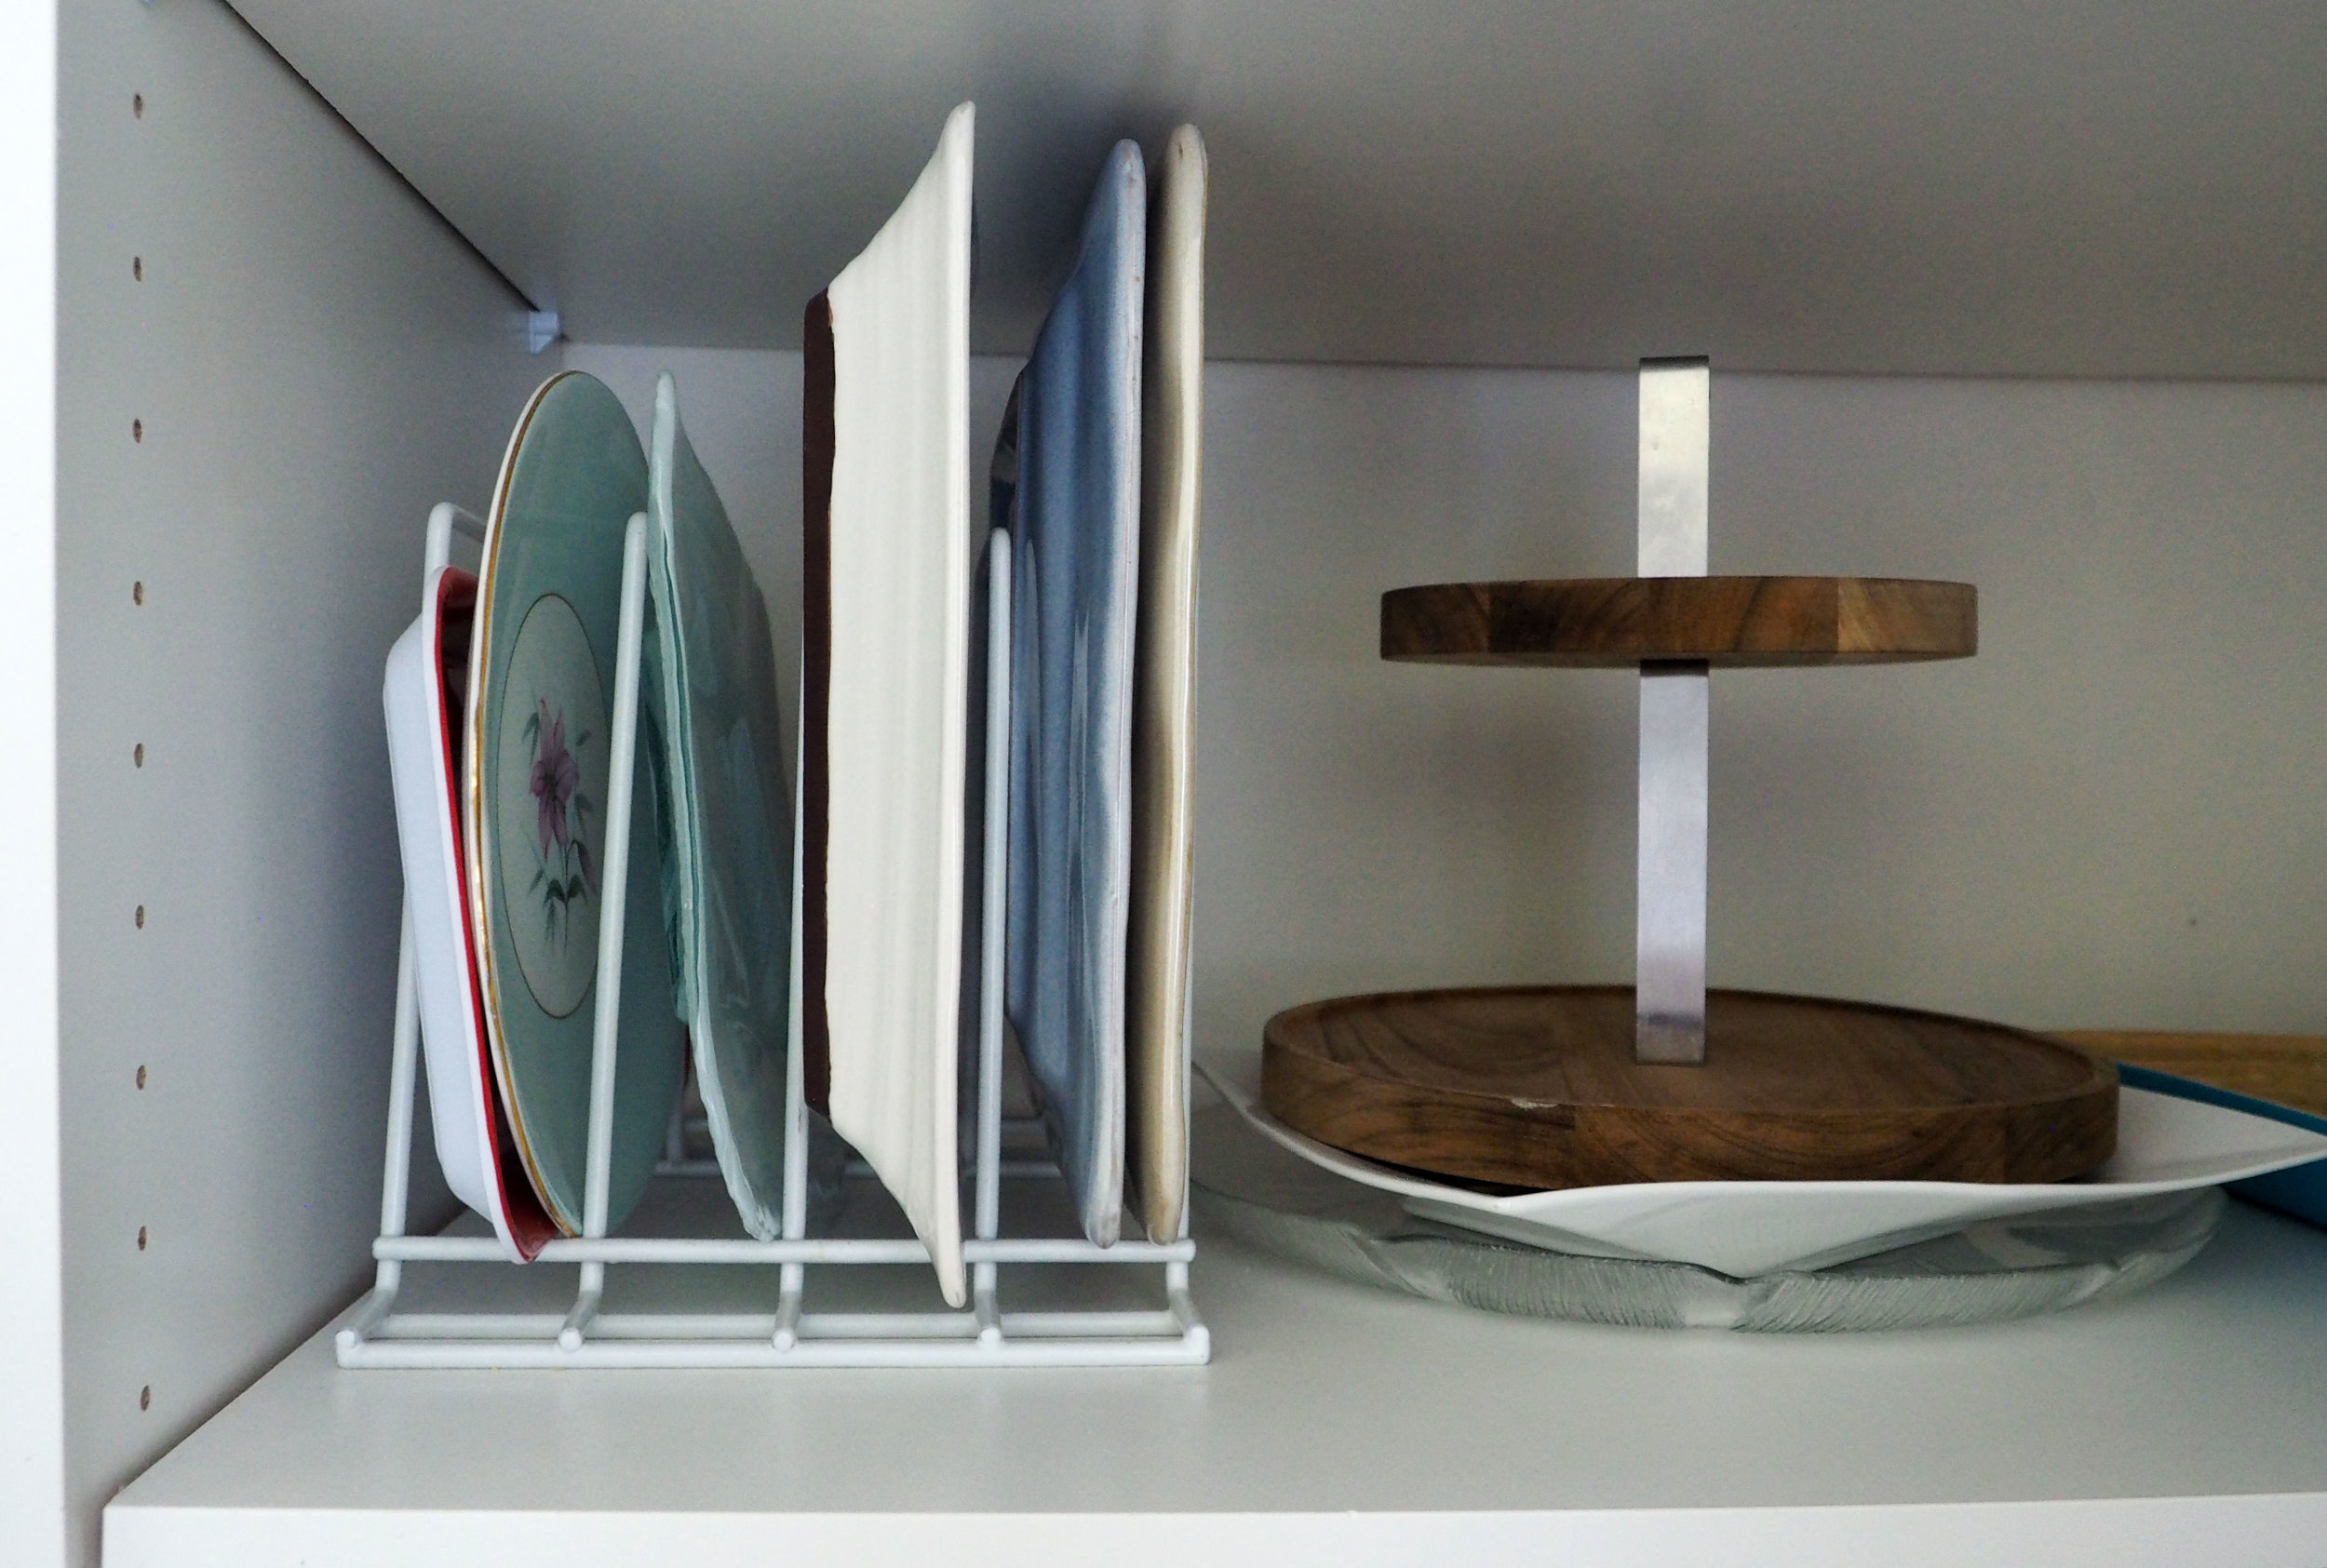 Organise platters in a divided dish tray for easy access {The Organised You|}